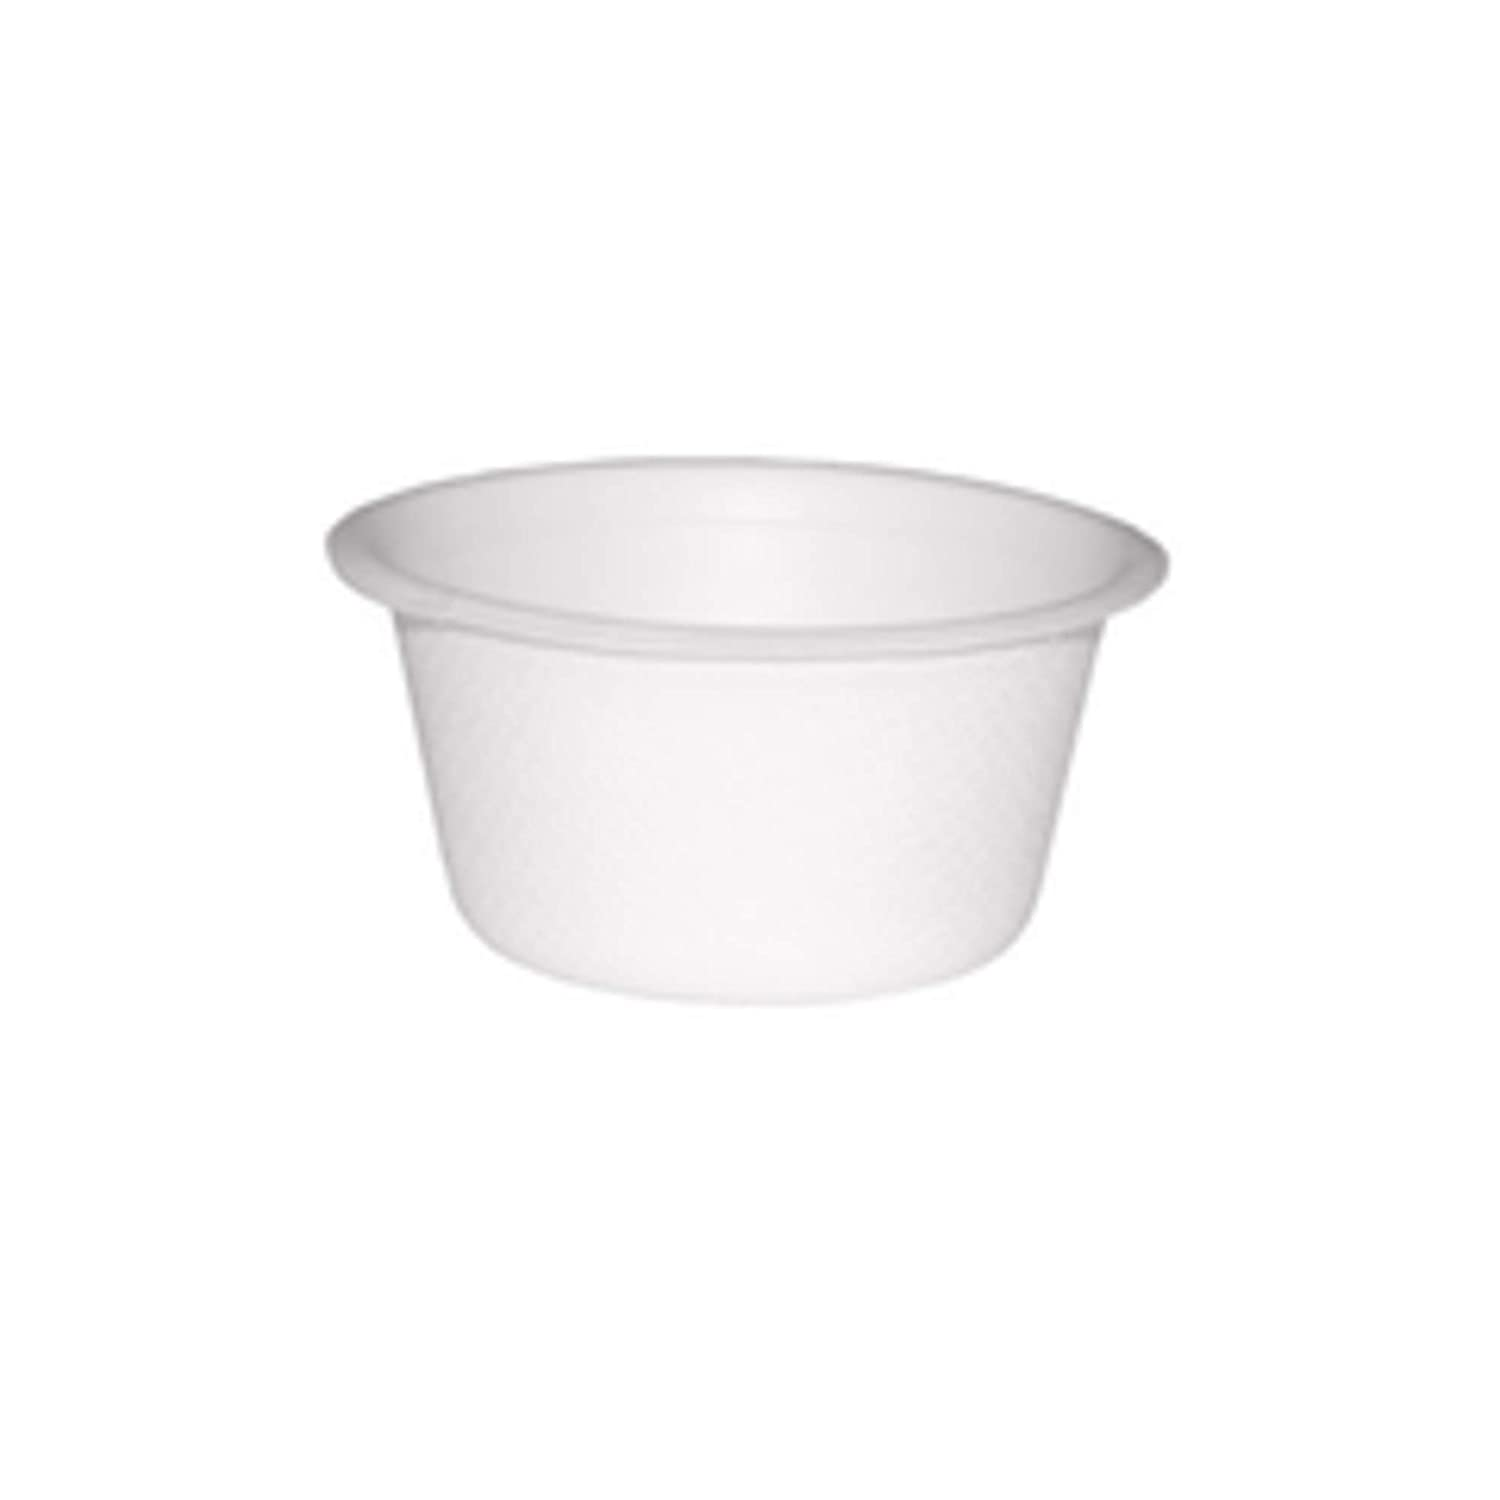 Sugarcane Condiment Souffle Cup (Case of 2000), PacknWood - Compostable and Biodegradable Dipping Cups (2 oz, 2.4